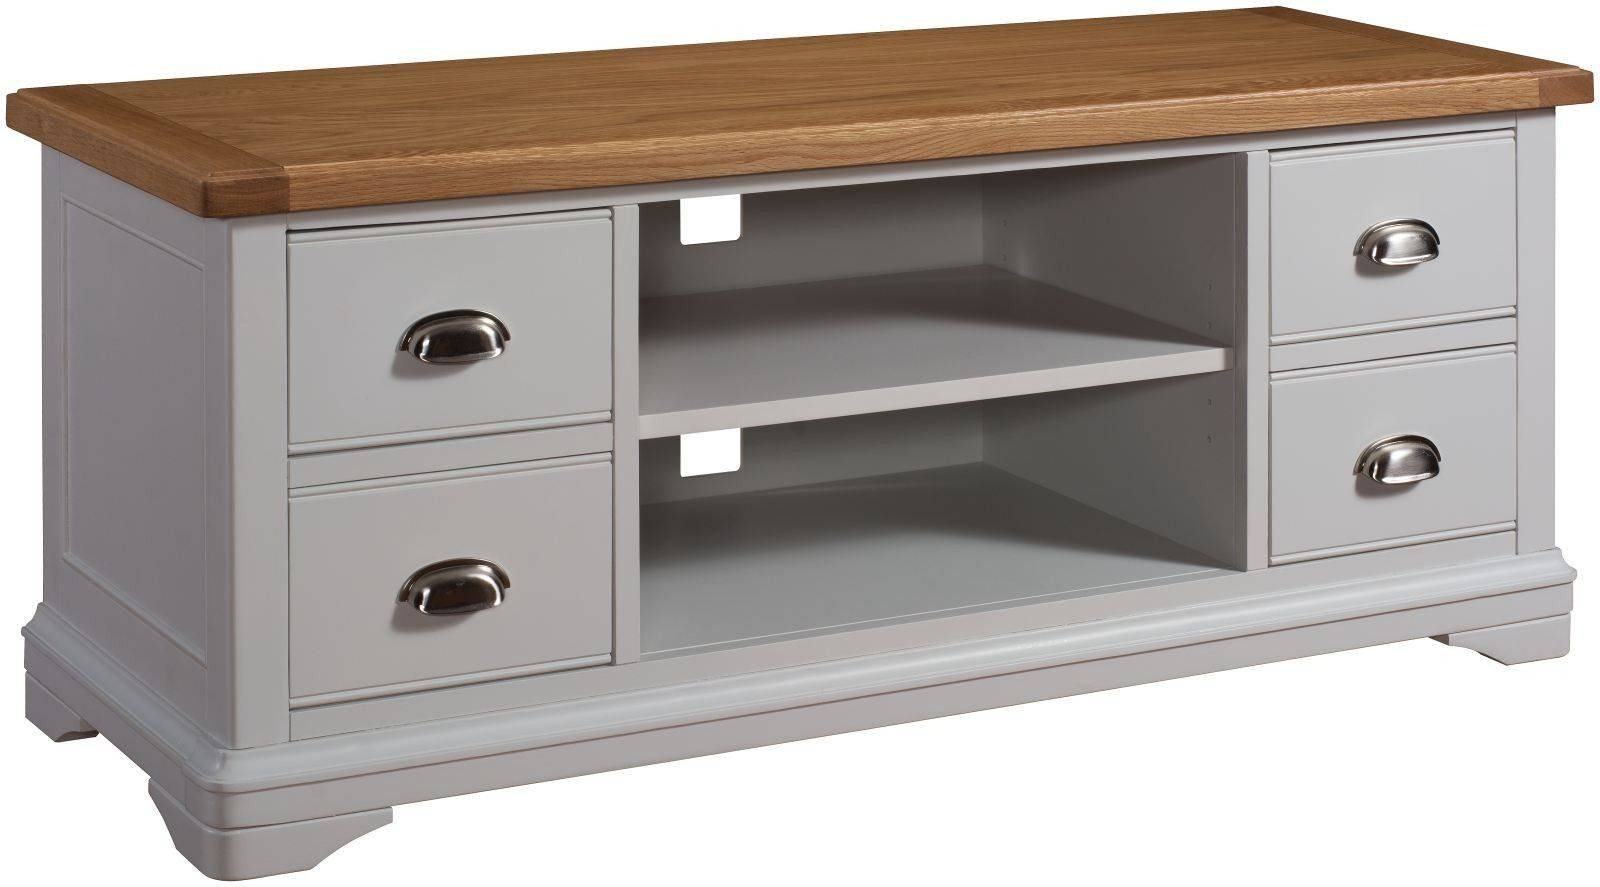 Lowa Painted Grey & Oak Country Style Tv Cabinet throughout Country Style Tv Cabinets (Image 9 of 15)